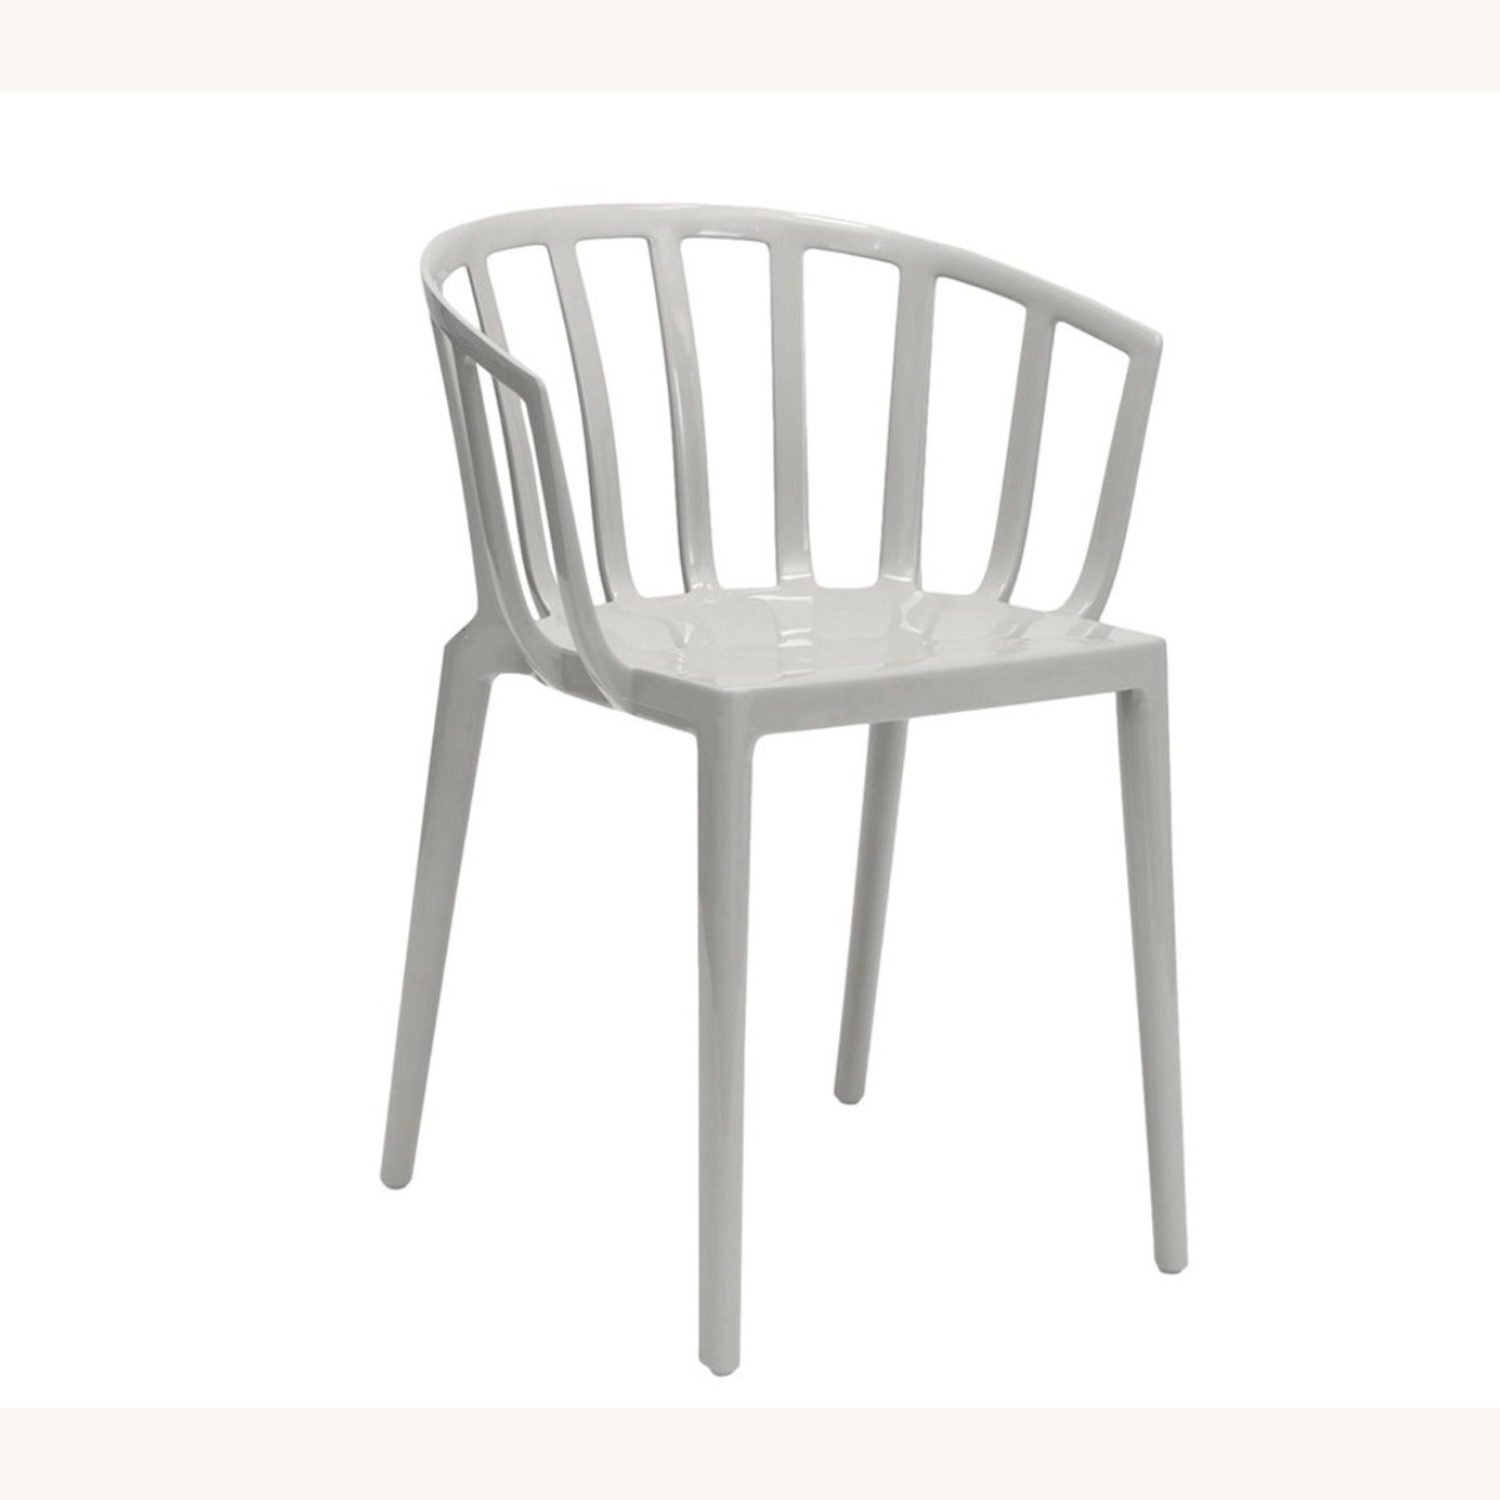 KARTELL Venice Chairs in Dove Gray Set of Two - image-1